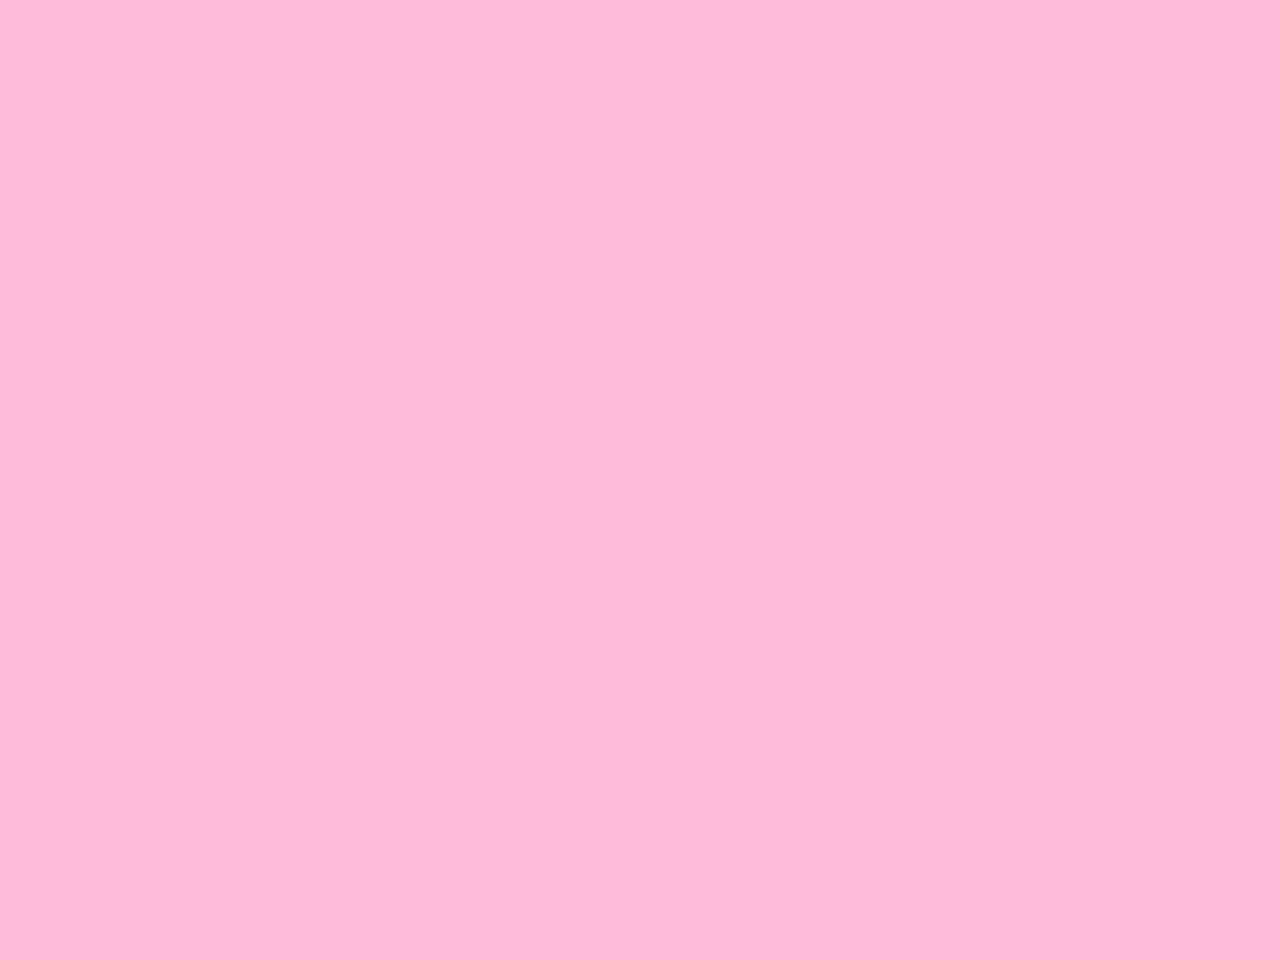 1280x960 Cotton Candy Solid Color Background